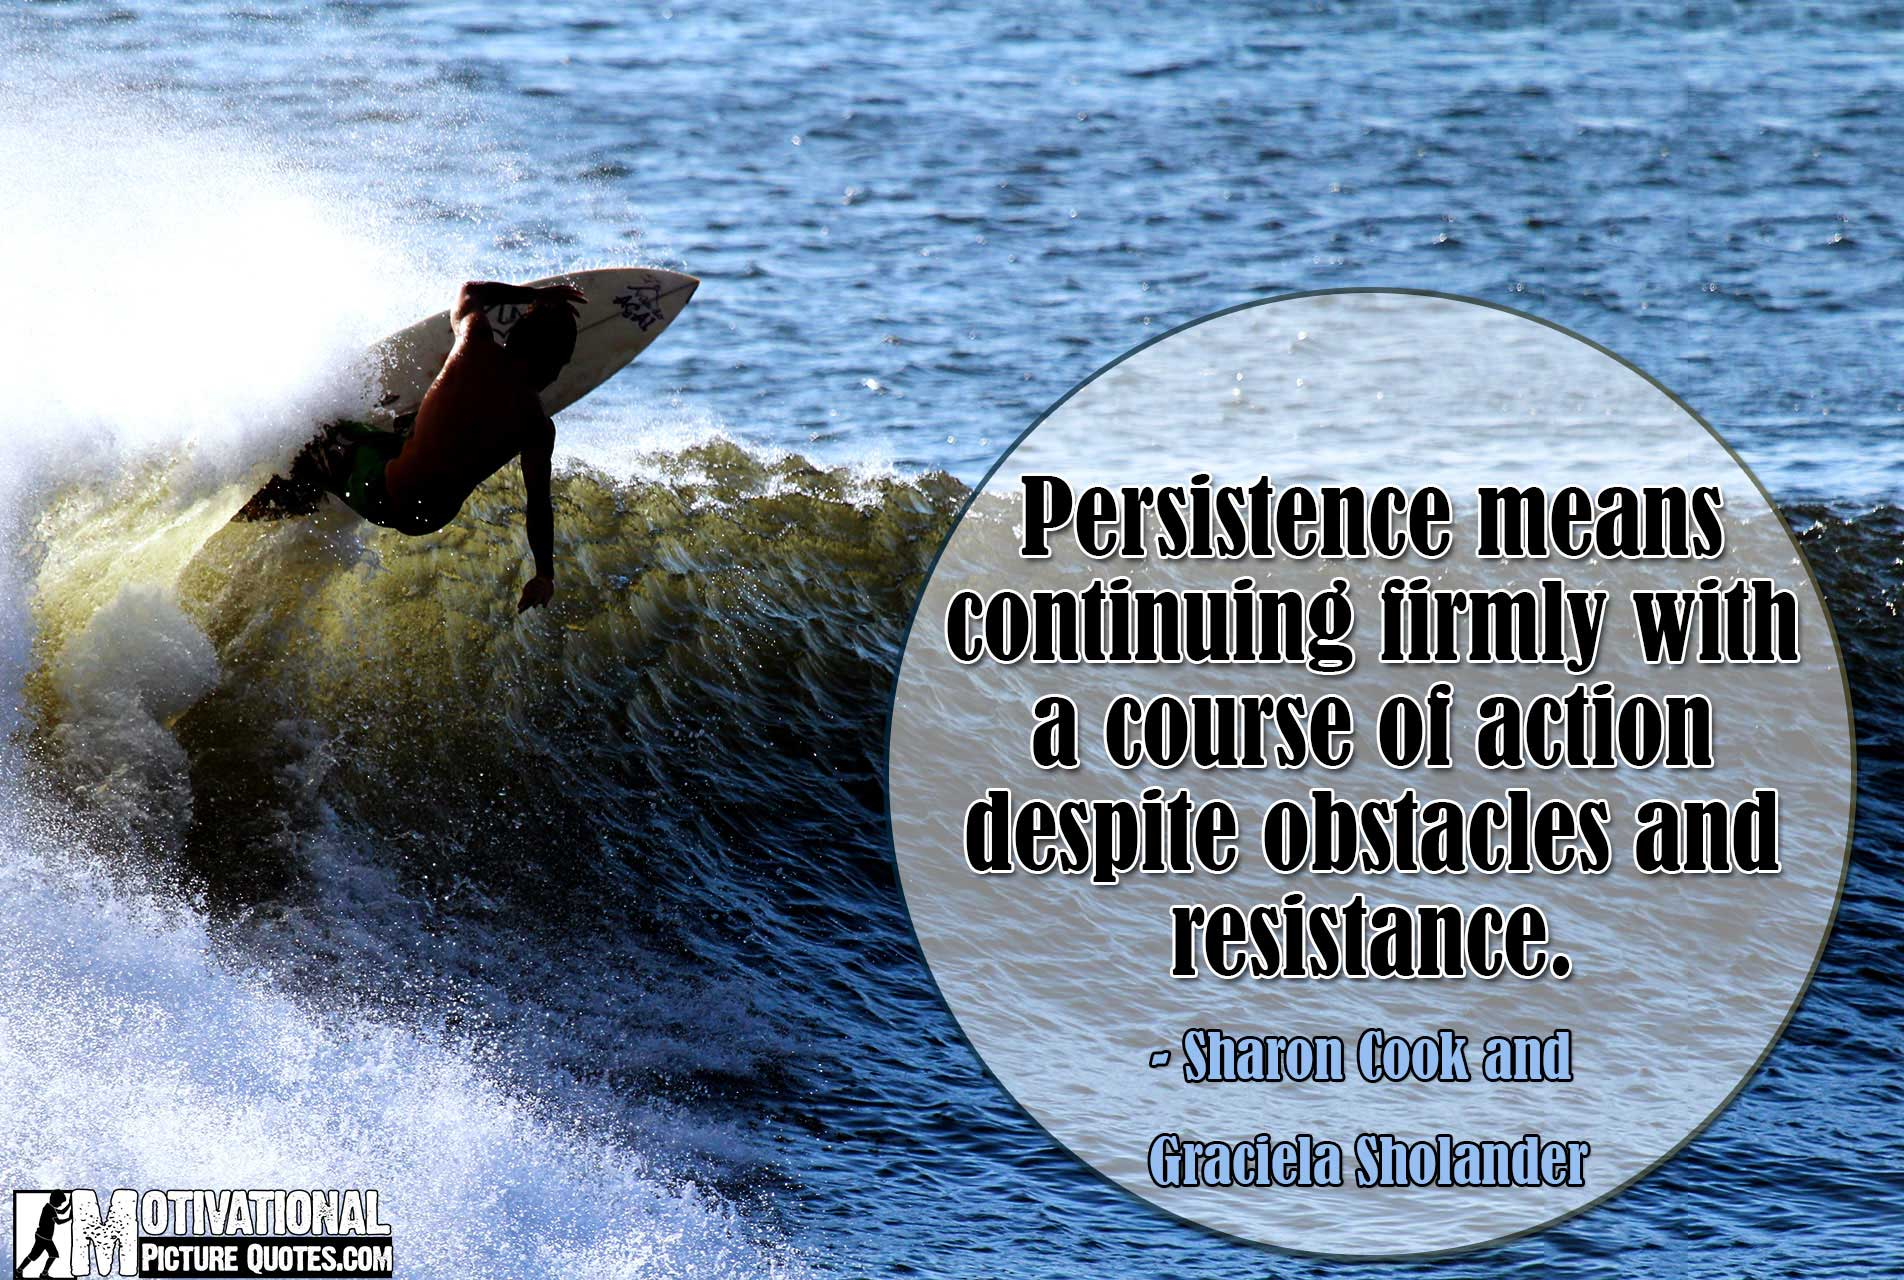 Persistence Motivational Quotes: 10+ Inspirational Quotes About Persistence Pays Off